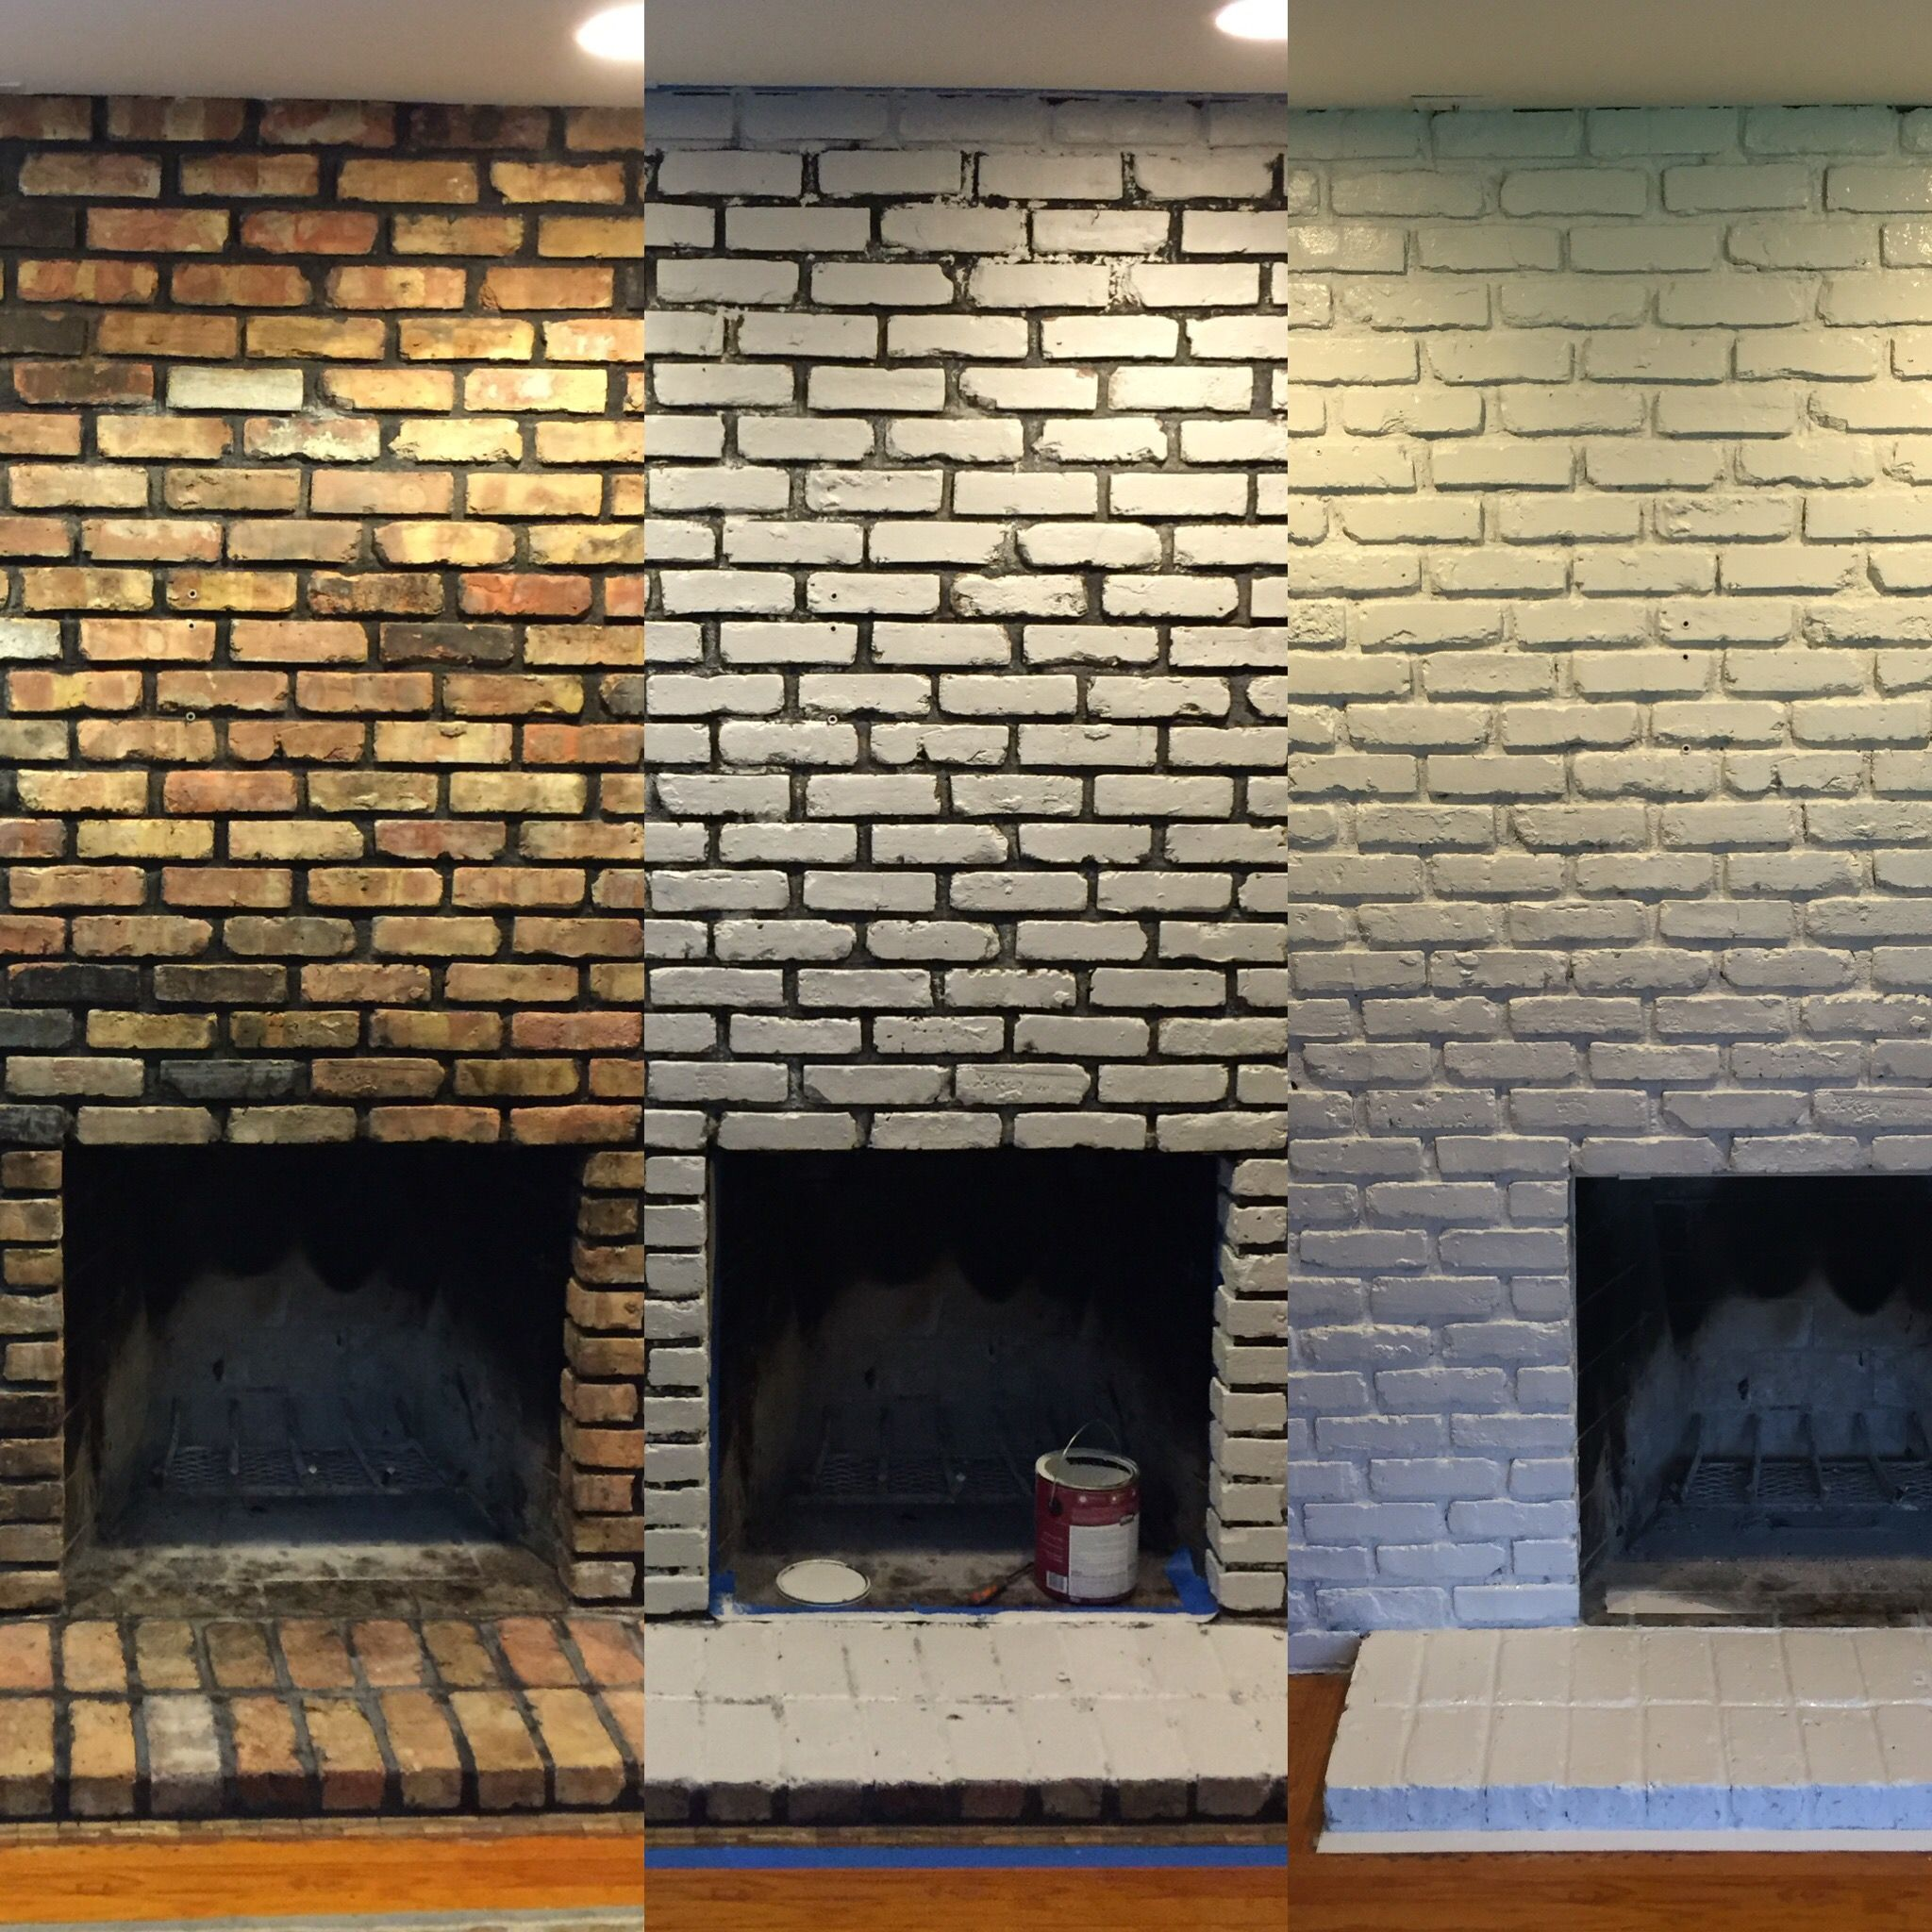 Diy Brick Fireplace Update From Black Mortar And Dated Brick To Modern Shabby Chic White White Wash Brick Fireplace Painted Brick Fireplaces Fireplace Update